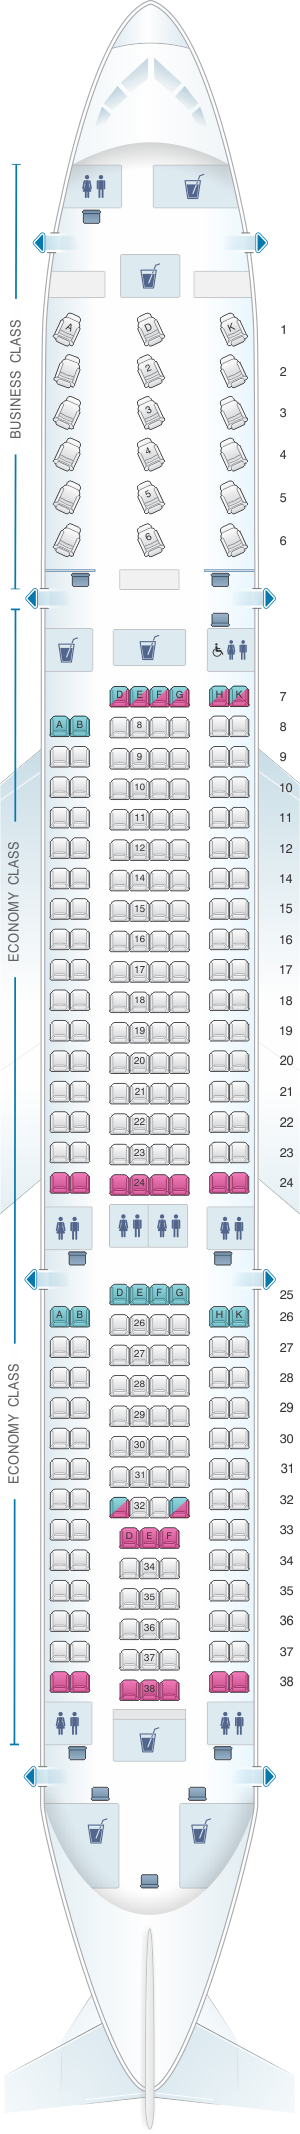 Seat map for Air Serbia Airbus A330 200